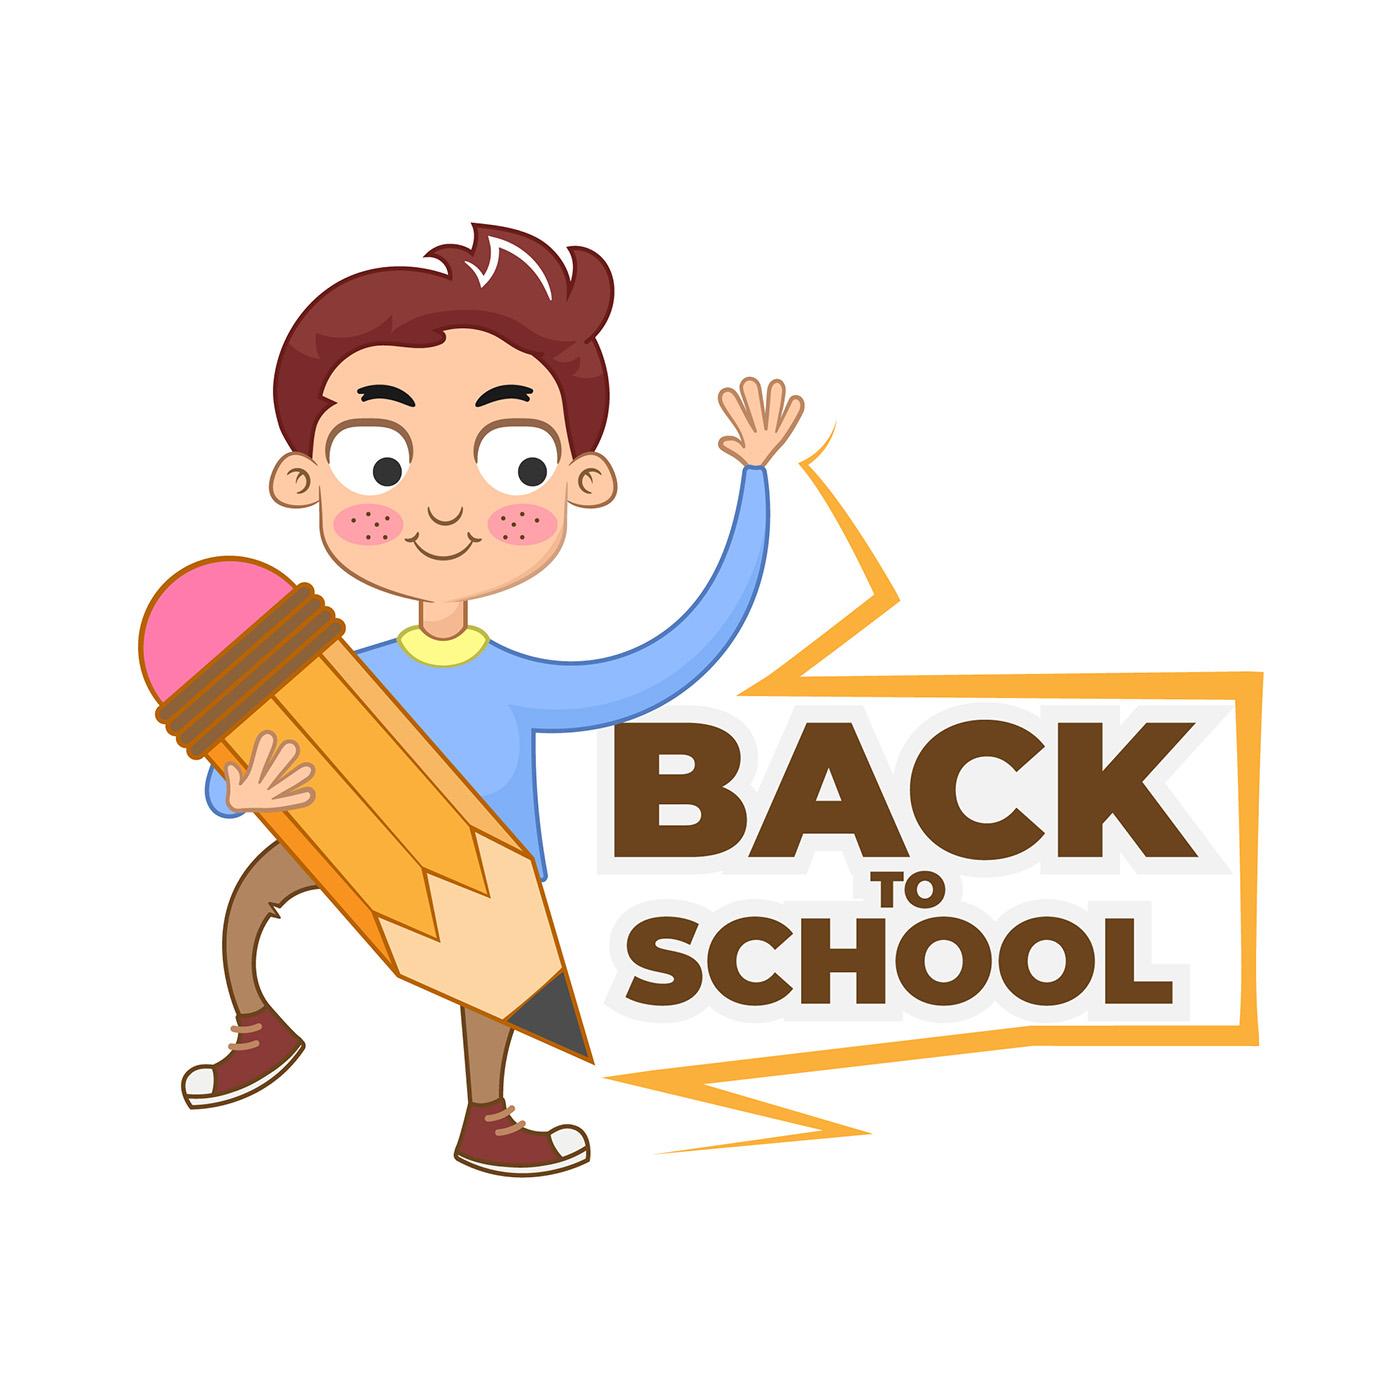 Back to School cartoon character holding pencil.